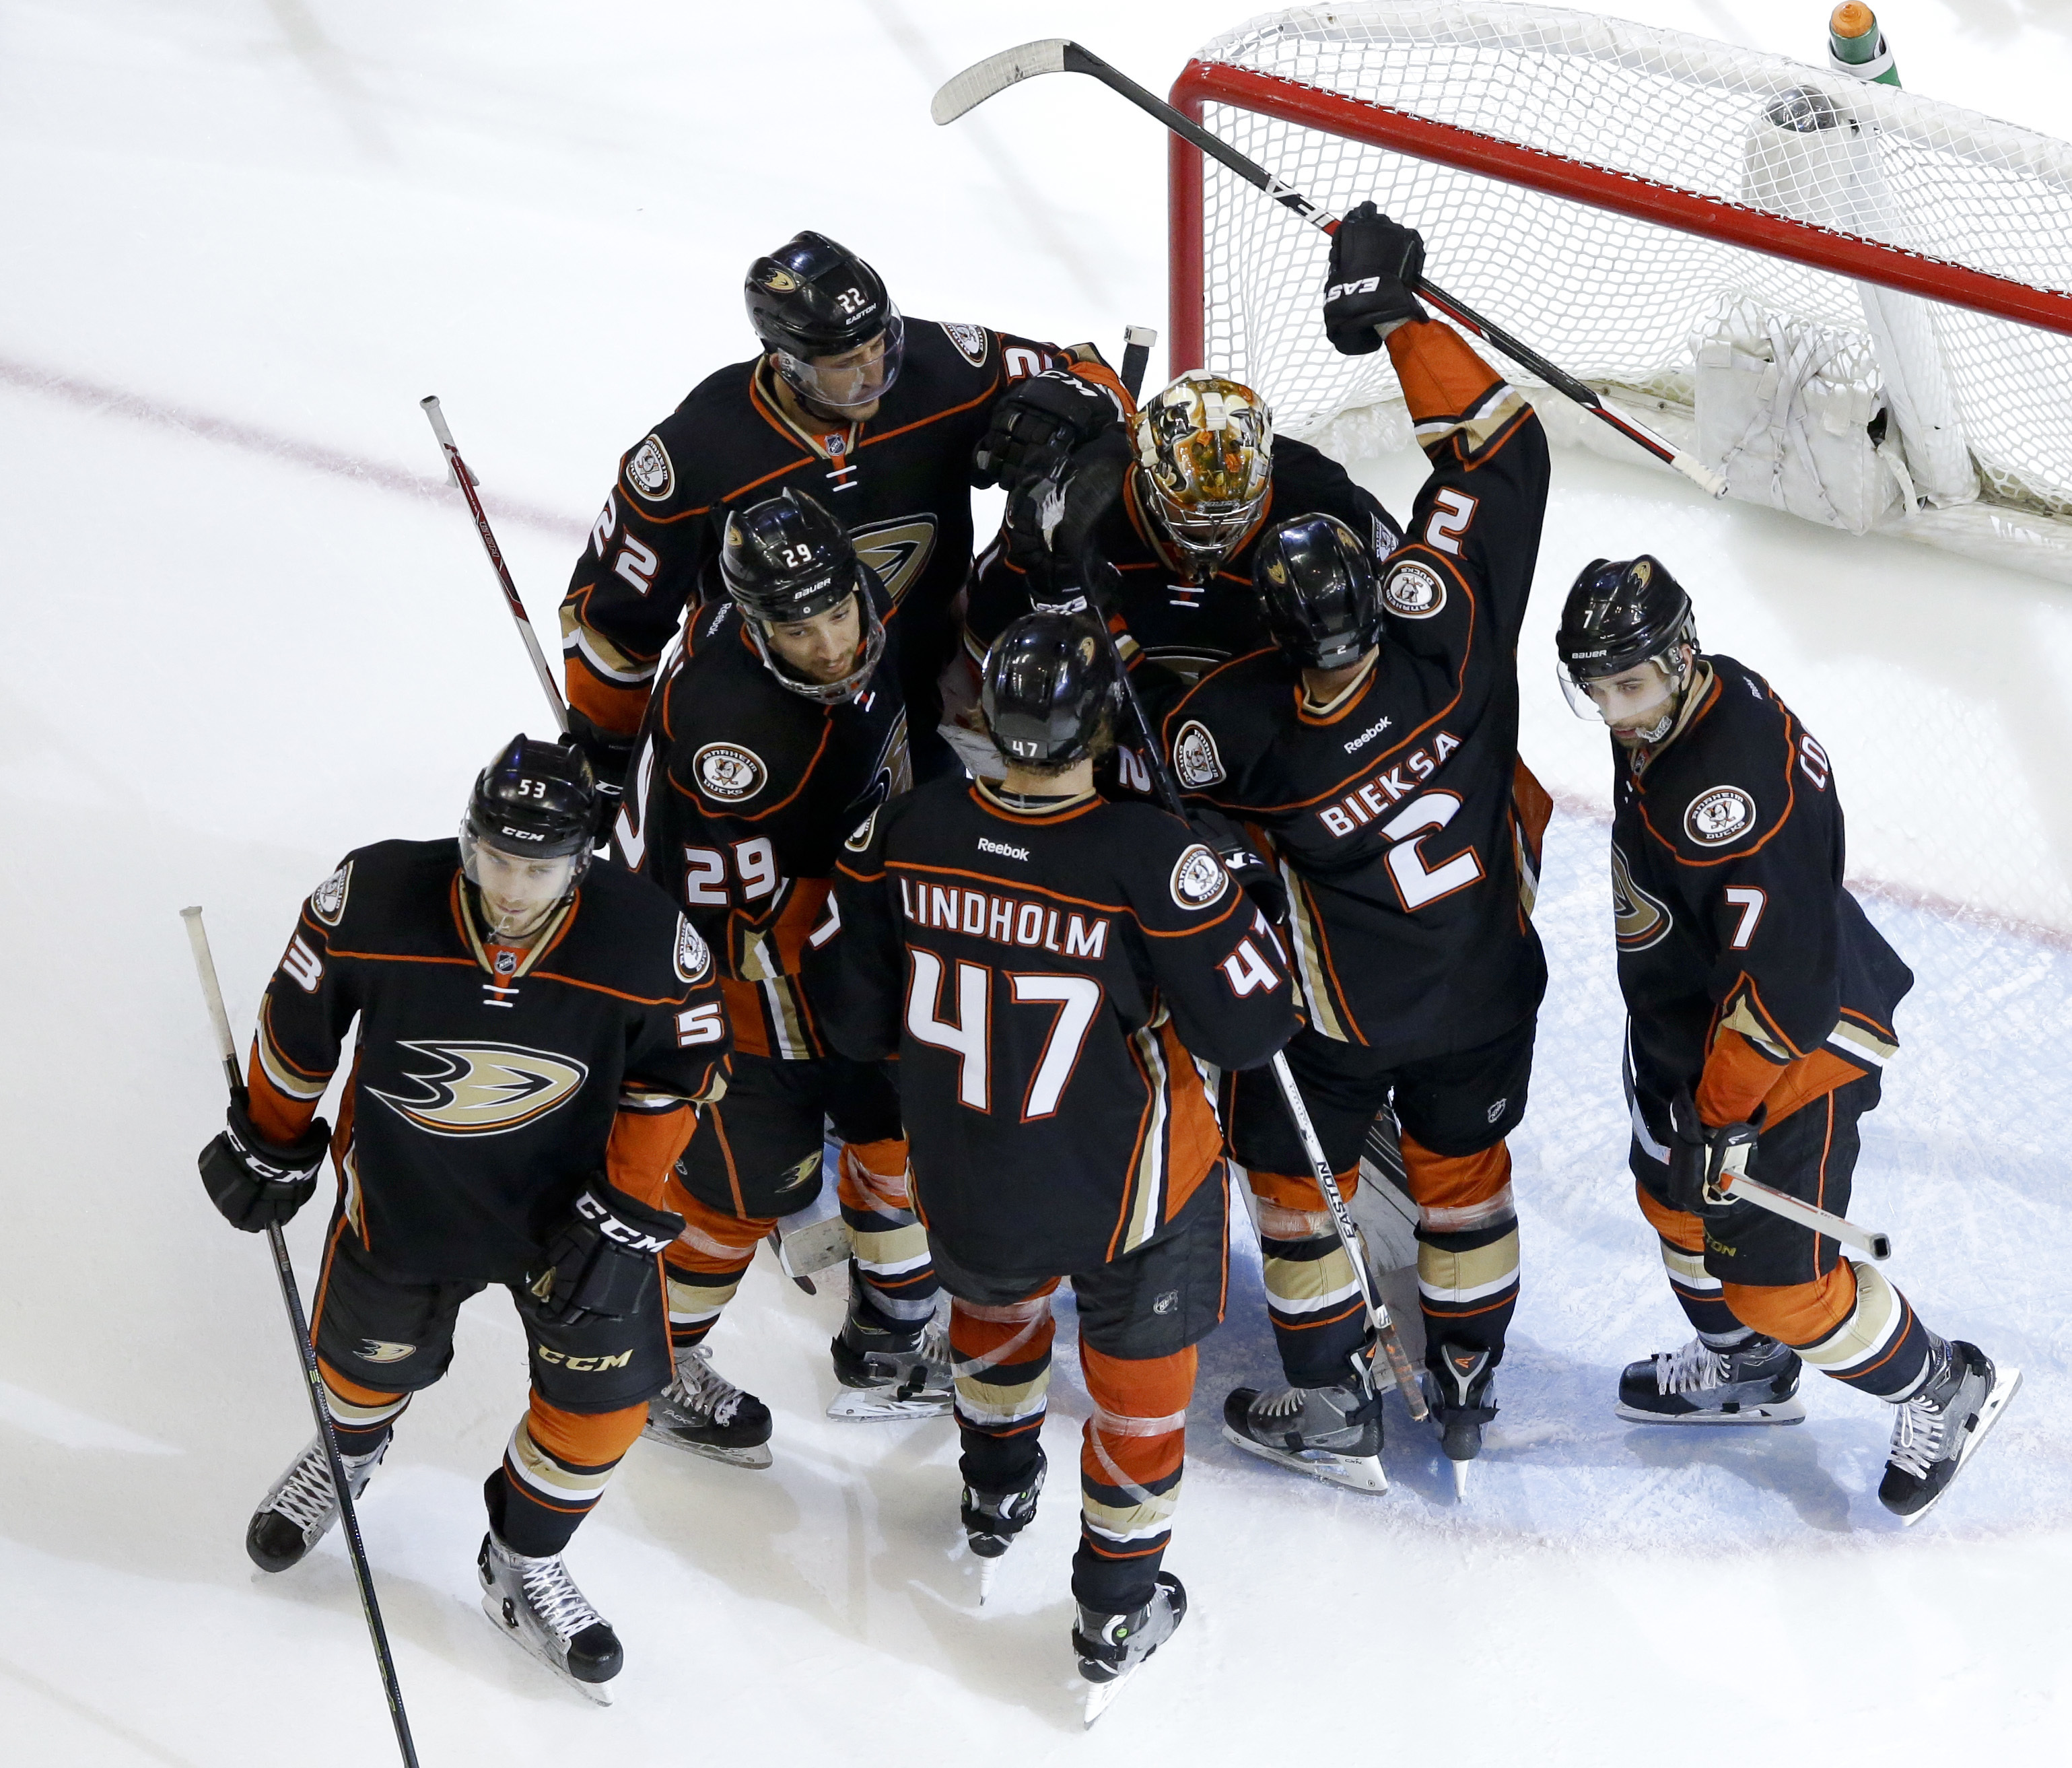 The Anaheim Ducks celebrates after a 5-2 win against the Nashville Predators during Game 5 in an NHL hockey Stanley Cup playoffs first-round series in Anaheim, Calif., Saturday, April 23, 2016. (AP Photo/Chris Carlson)